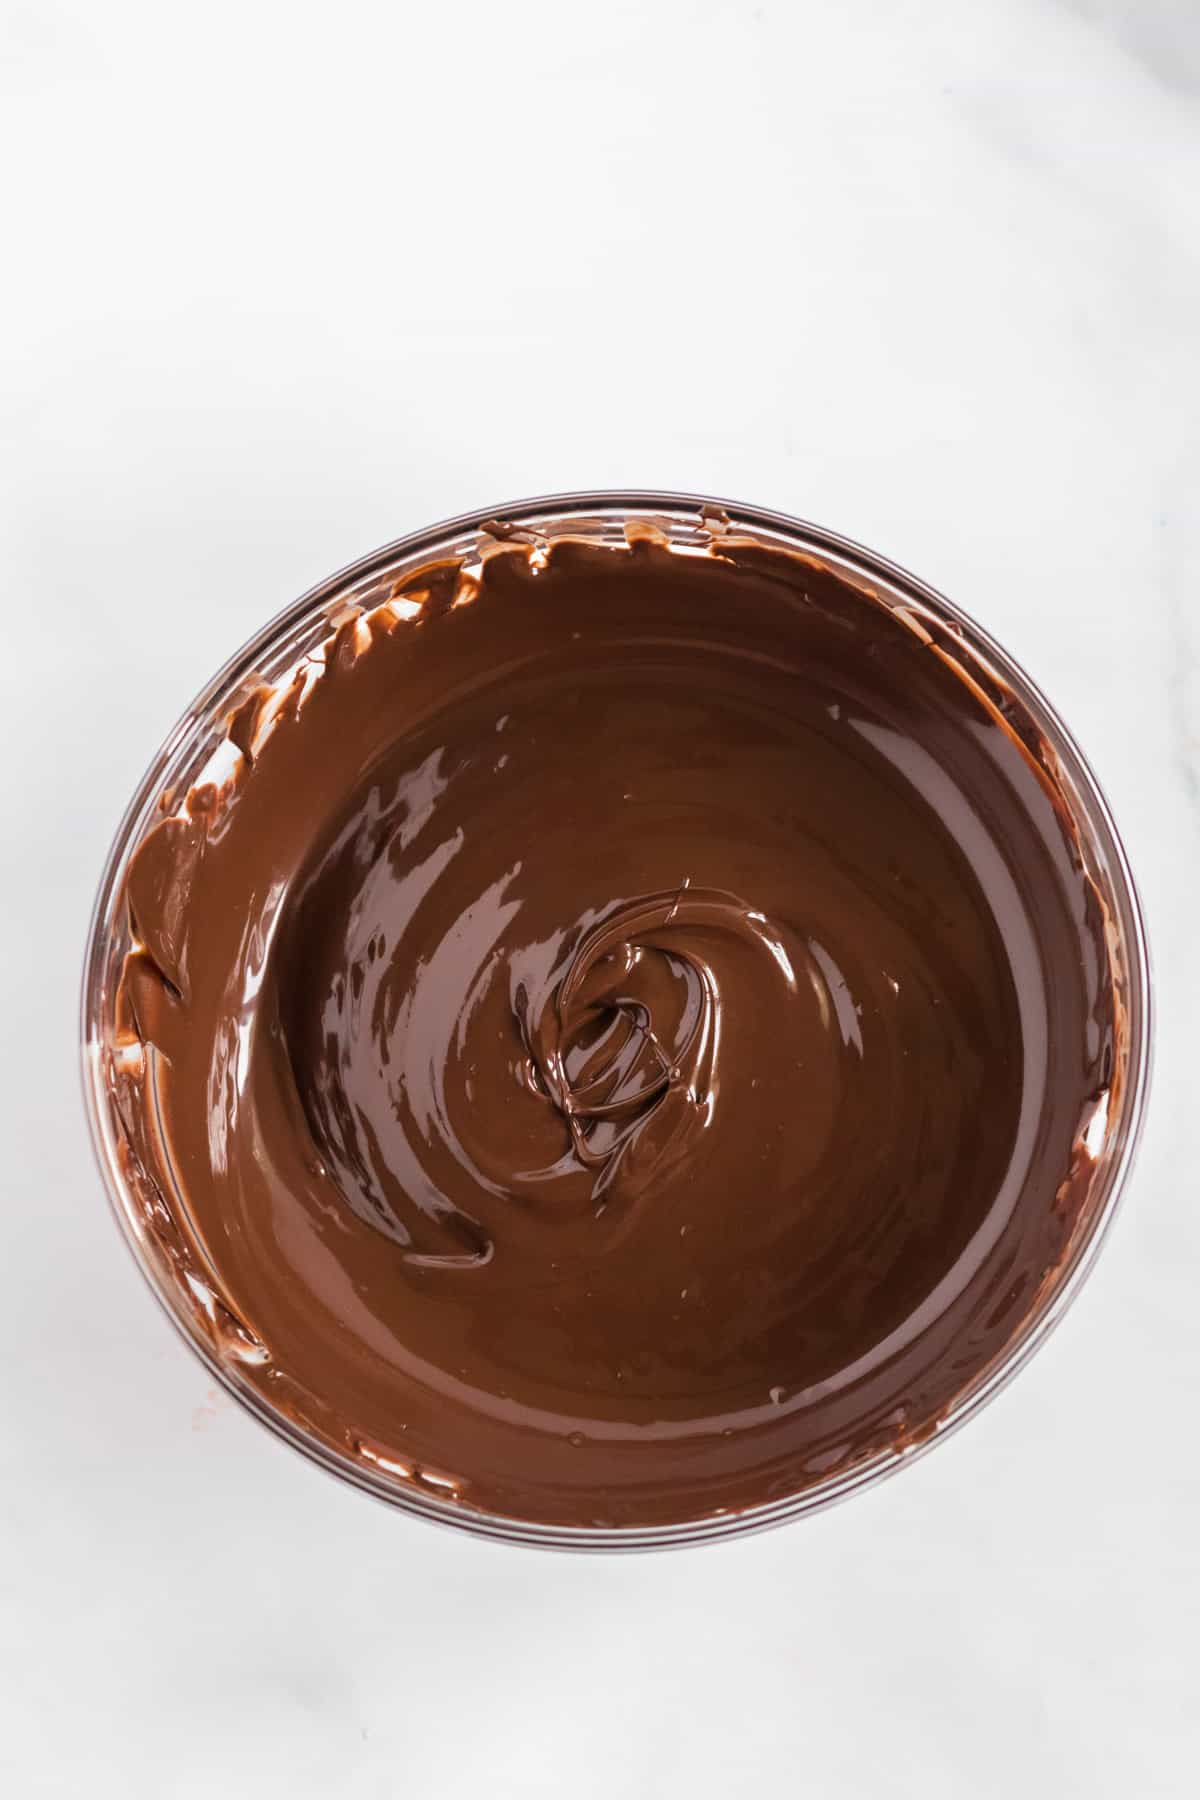 melted chocolate in a bowl